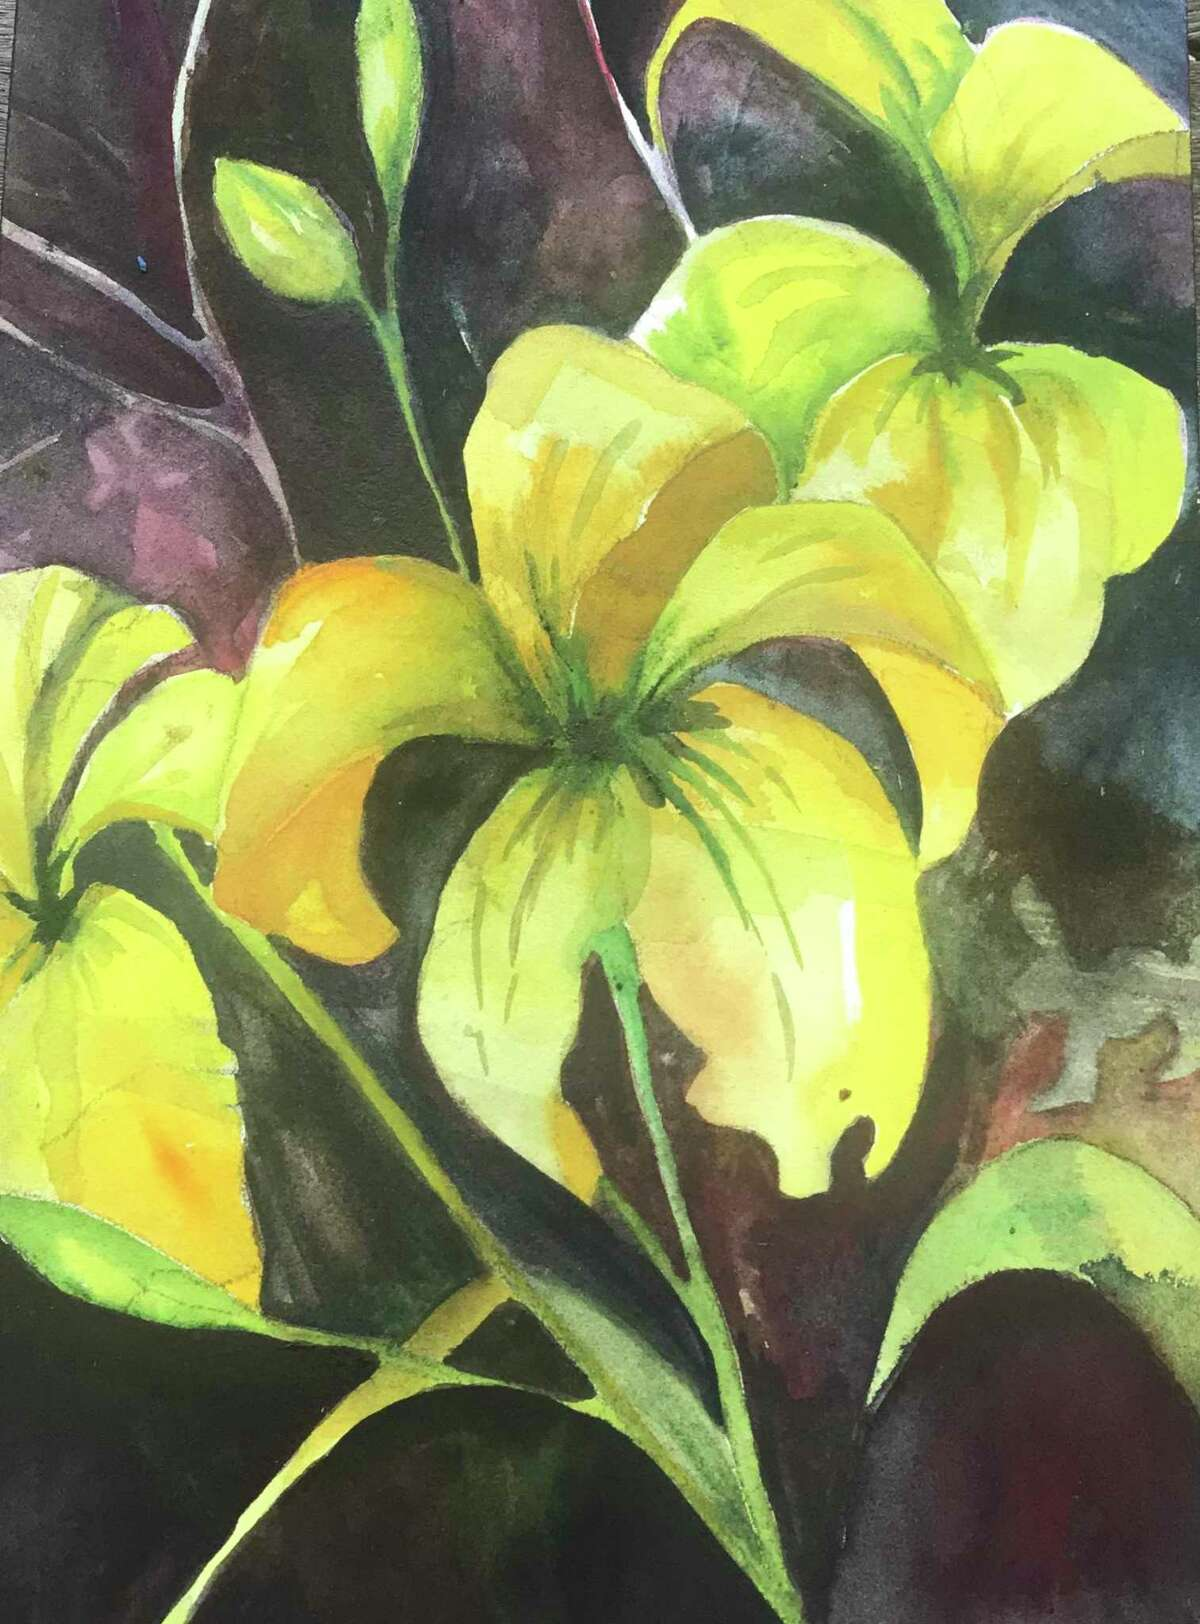 New works by artists from Essex, Chester and Deep River will be shown at Earth and Fire Art Studio starting Saturday, Oct. 24 through Jan. 23. Pictured, Yellow Day Lilies, Claudia Van Nes.